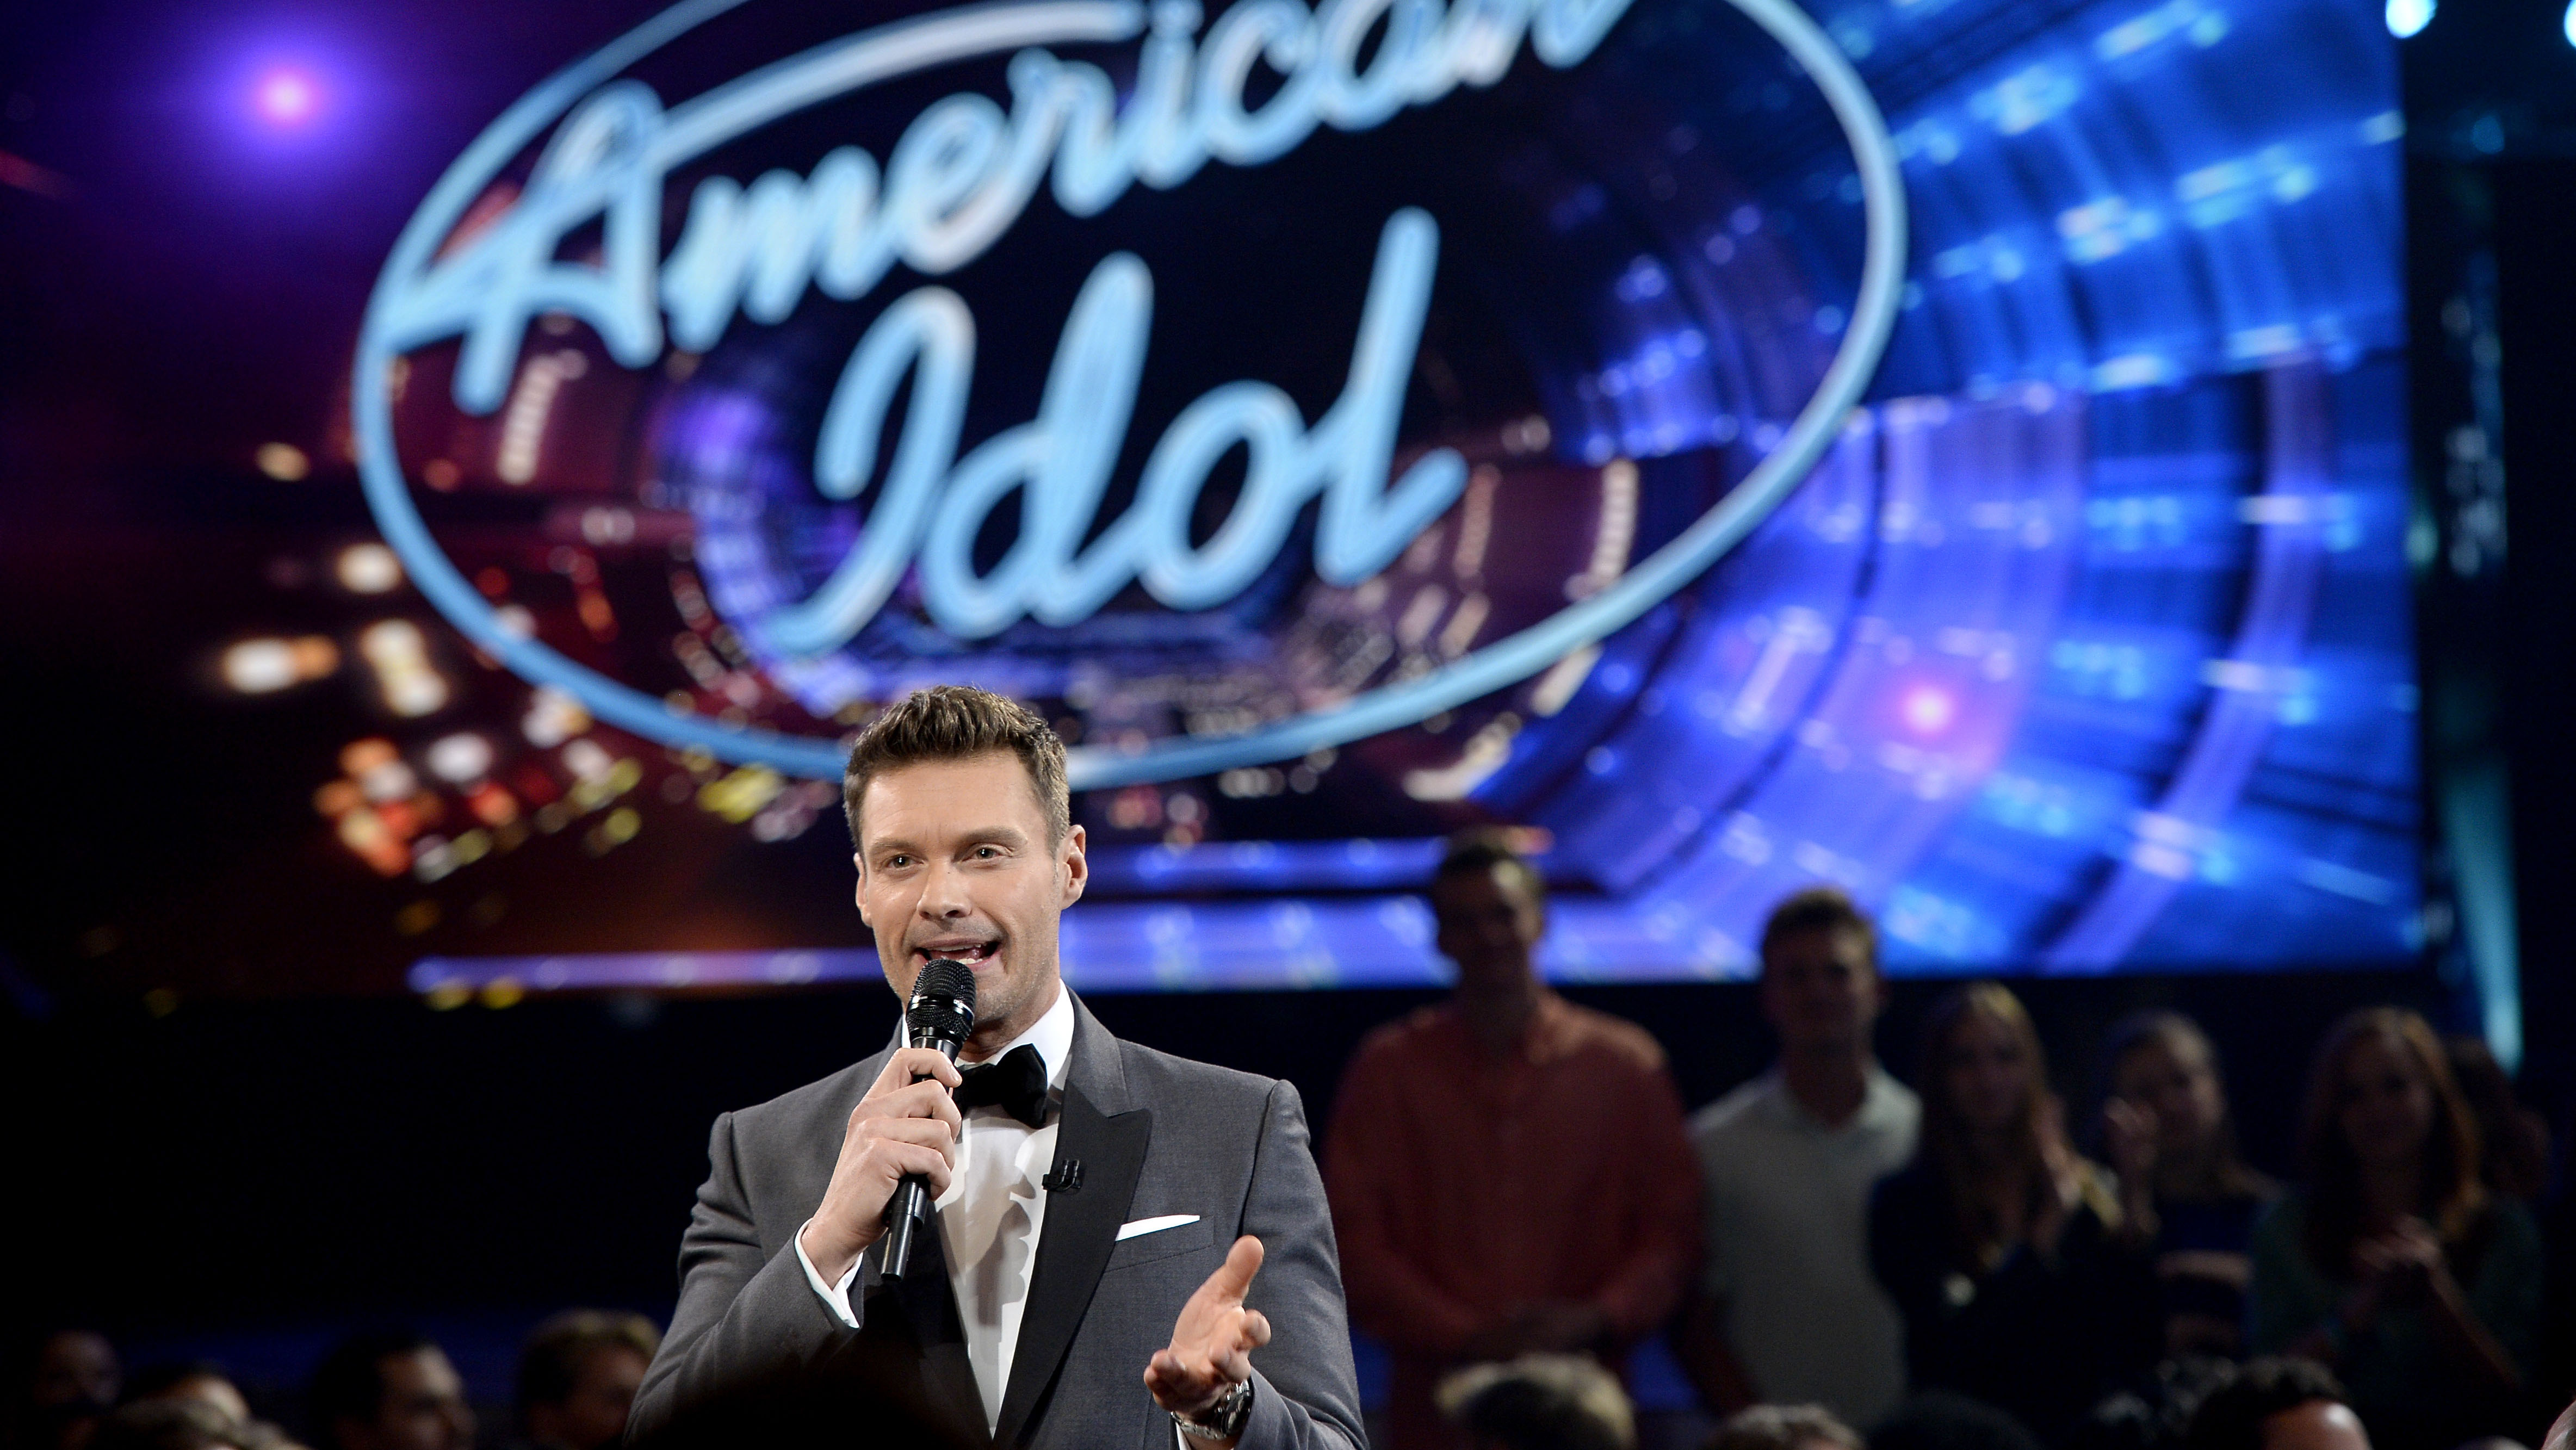 american idol is officially returning next season, but abc, not fox